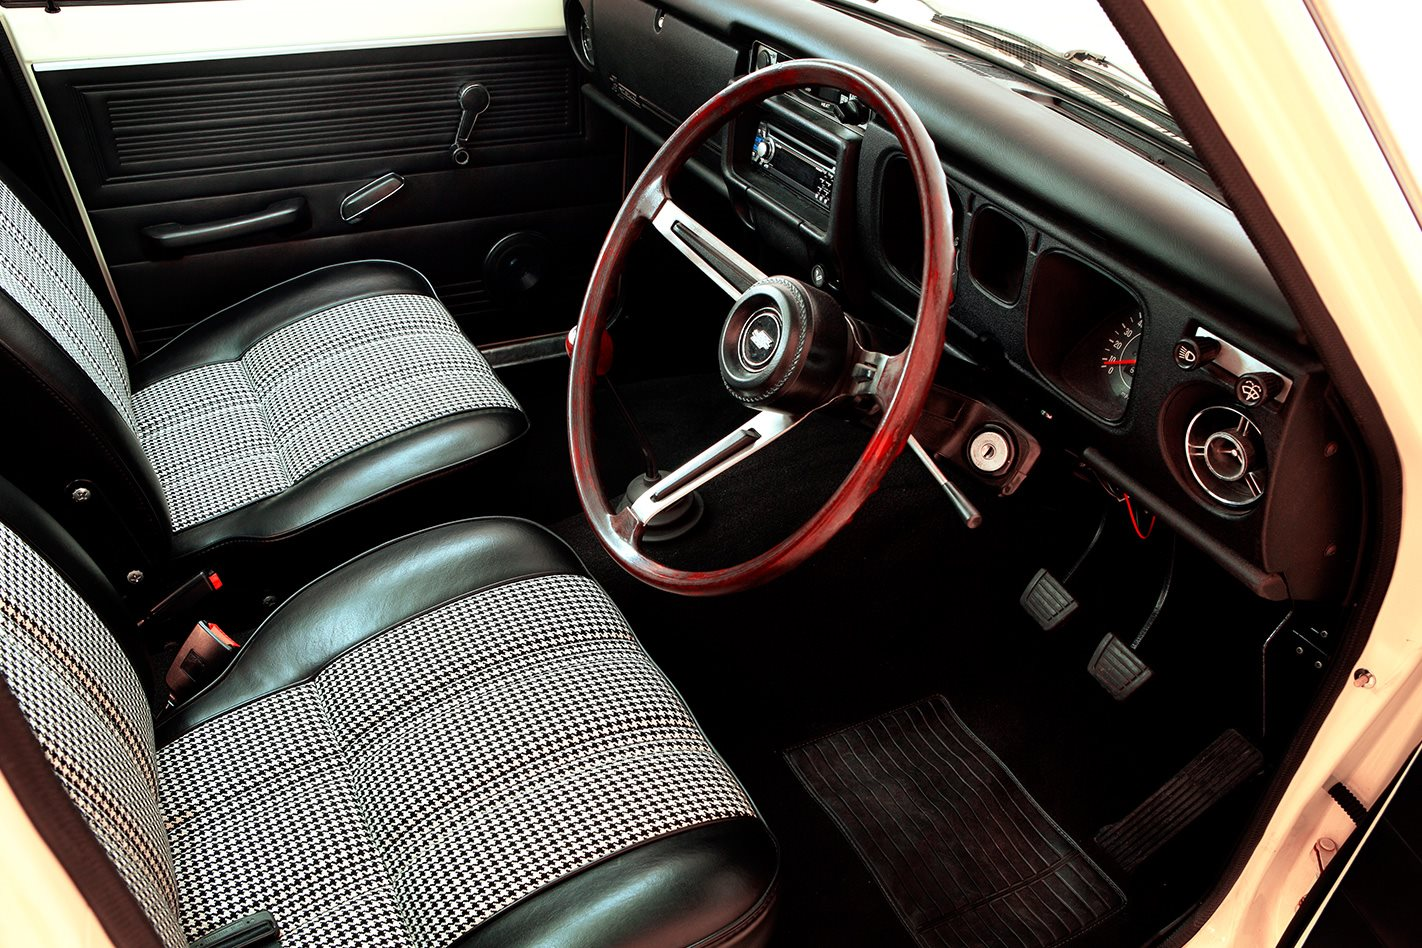 Datsun 1600 legend series interior